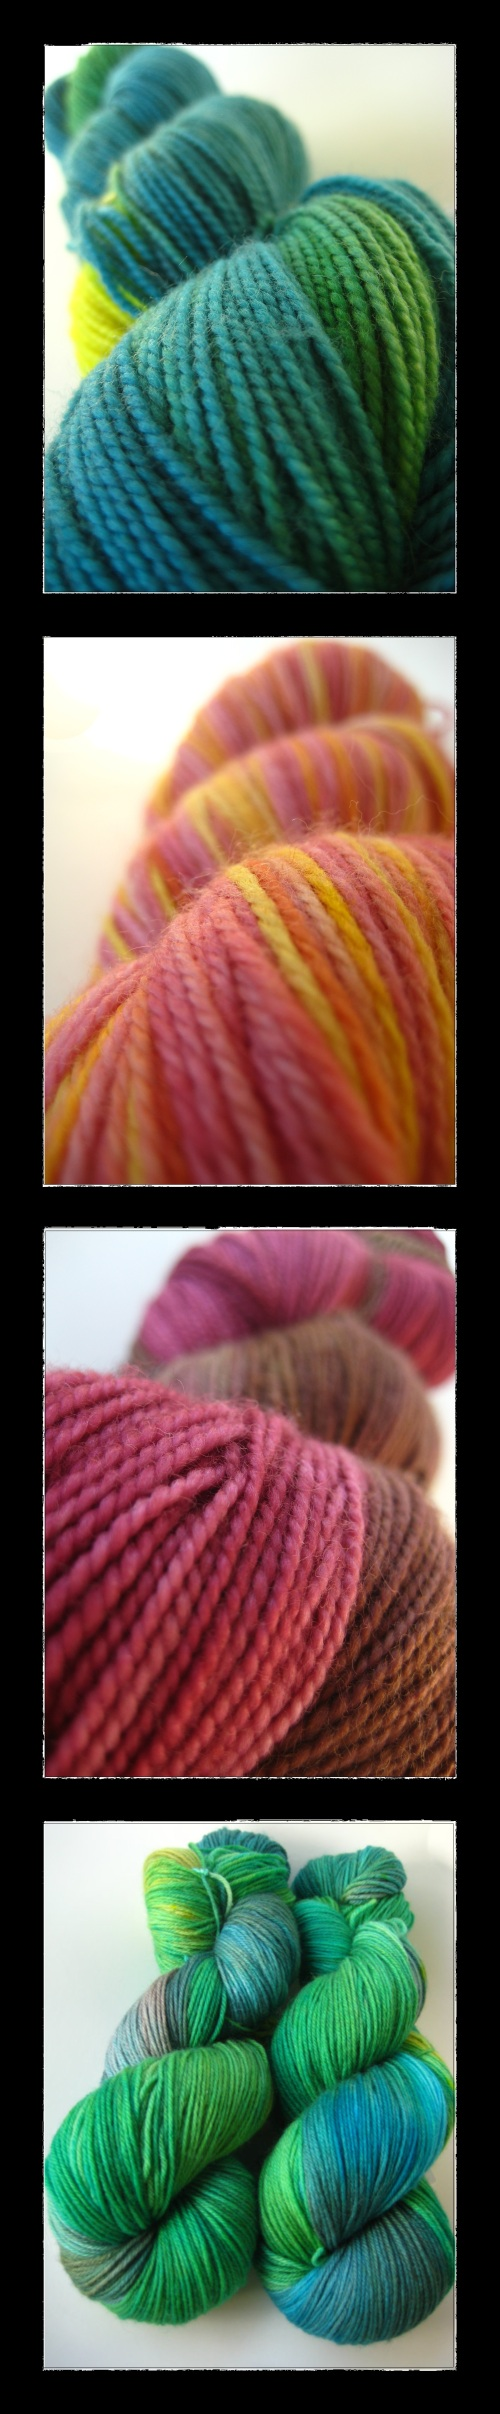 Hand dyed yarn for knitting and crochet by indie dyer SpaceCadet Creations